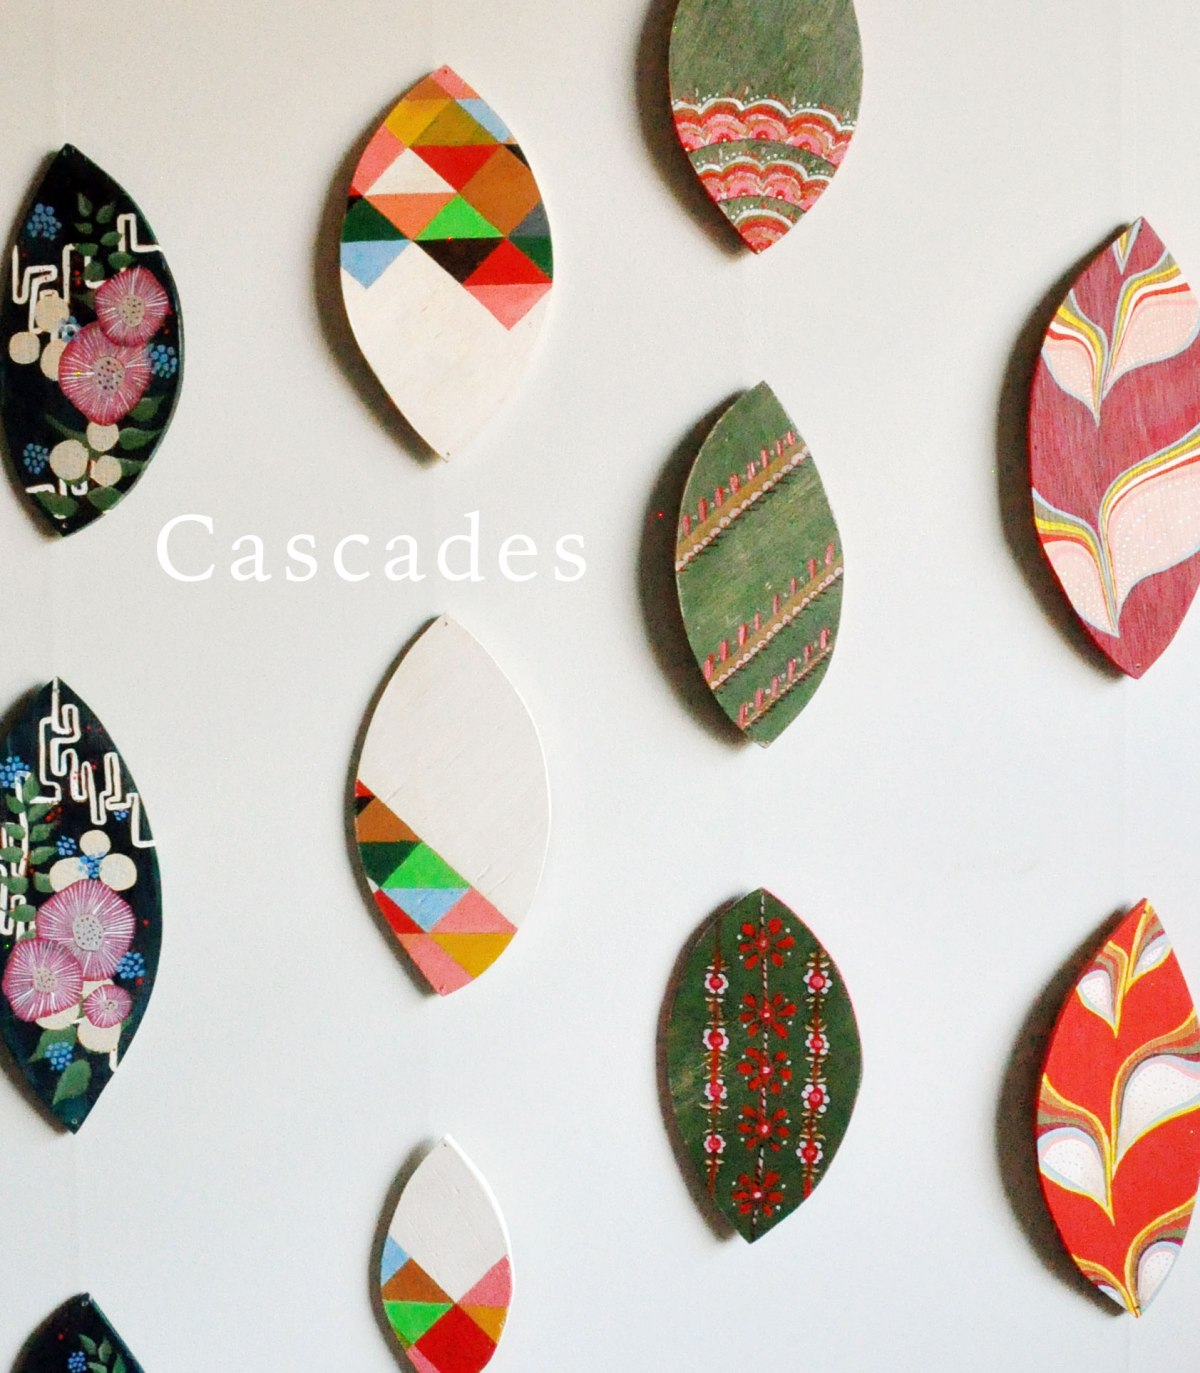 Annex Cascades - Hand Painted Hanging Art - Colourful, Bright and Beautiful Decorative Arts